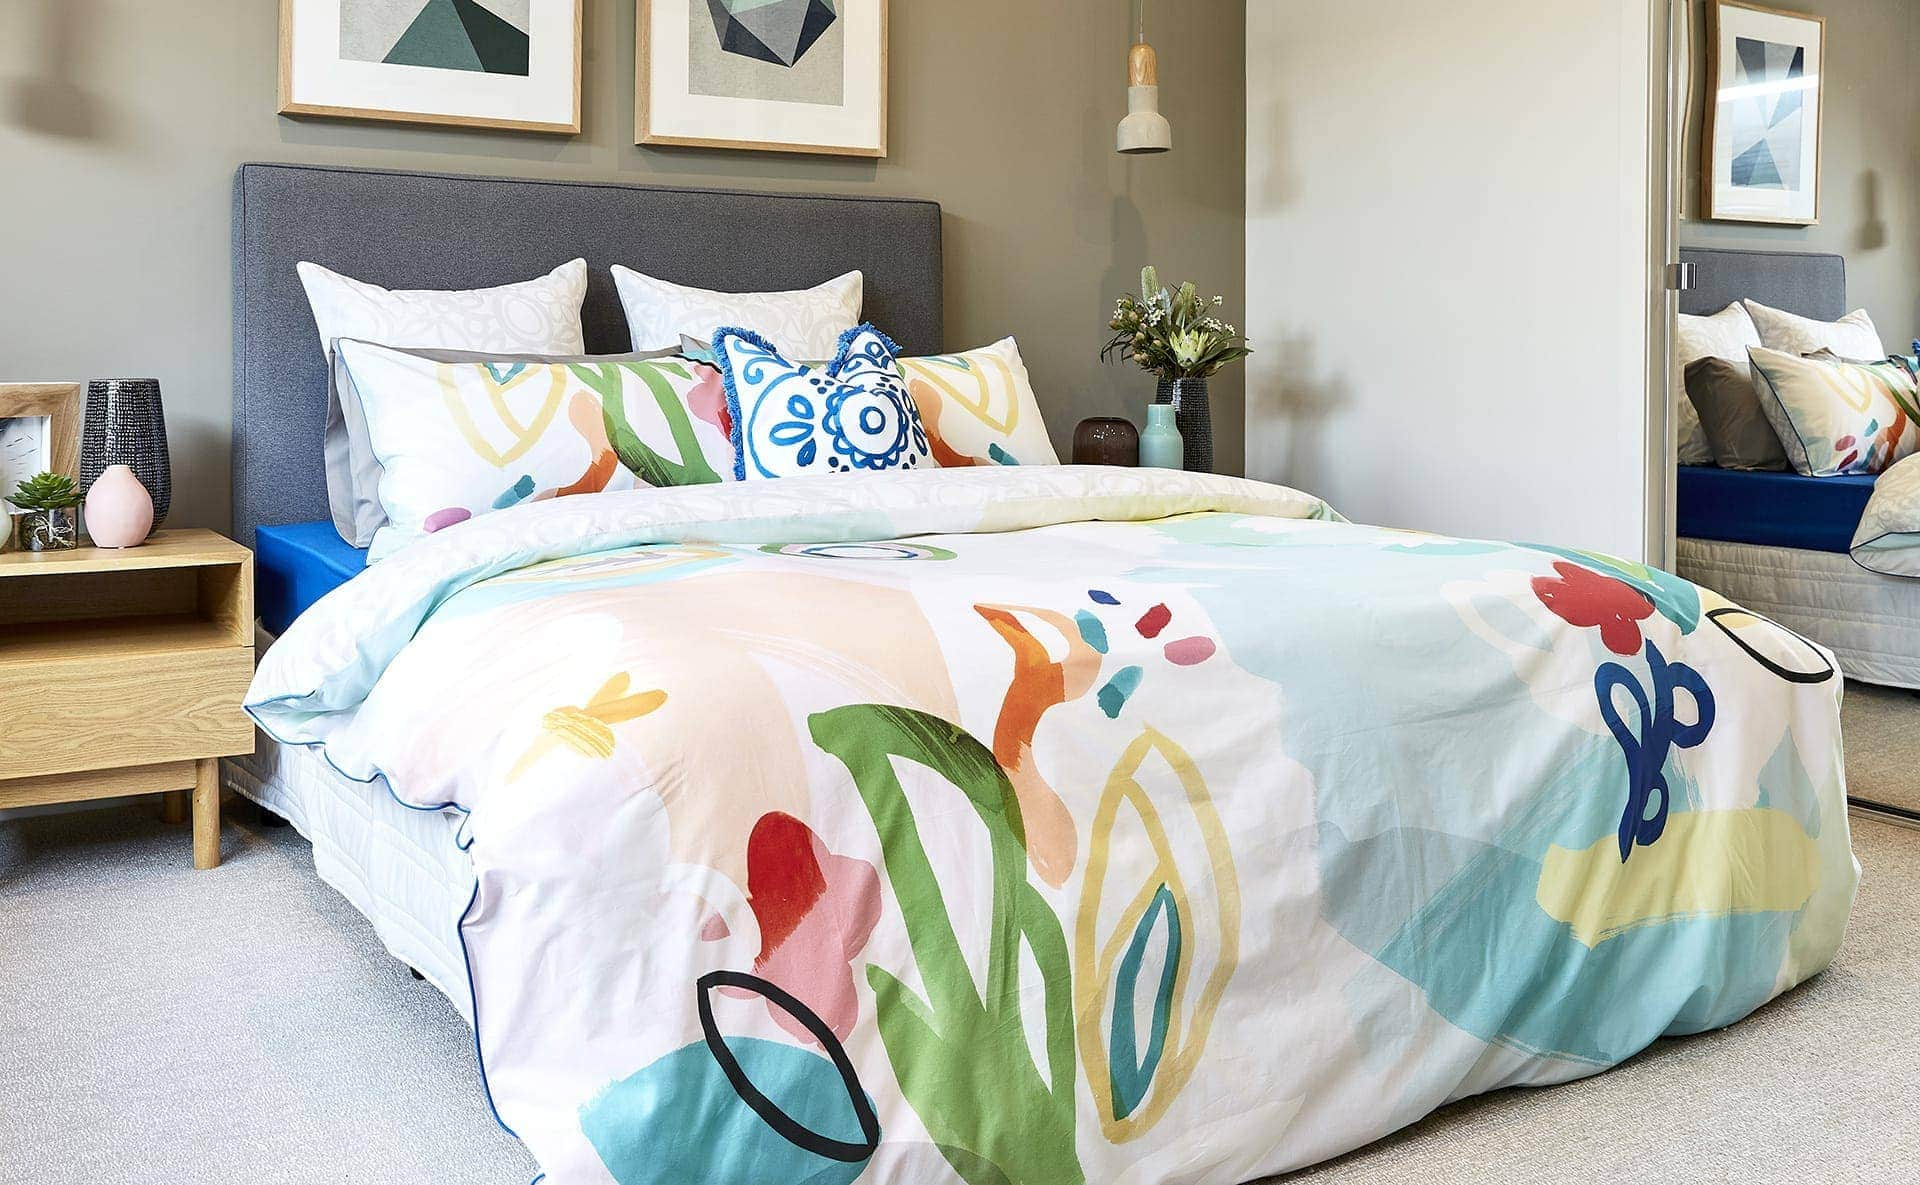 lorraine lea colourful bedding set against charcoal grey headboard spring decorating ideas tlc interiors